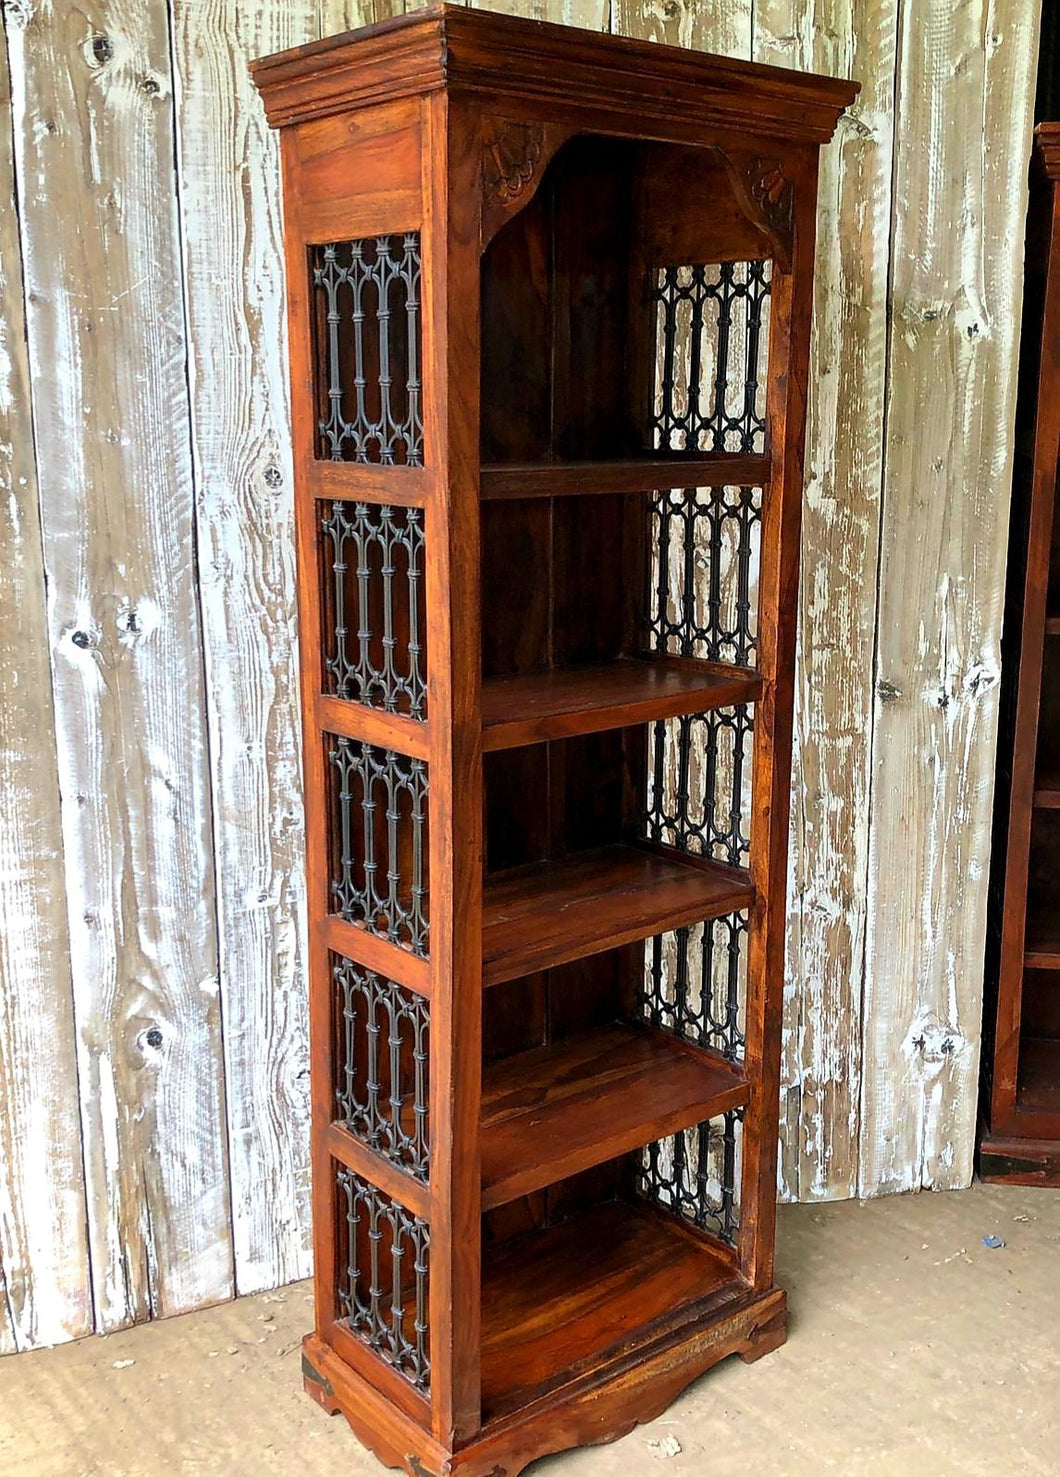 Heavy Bookcase With Wrought Iron Panels (6